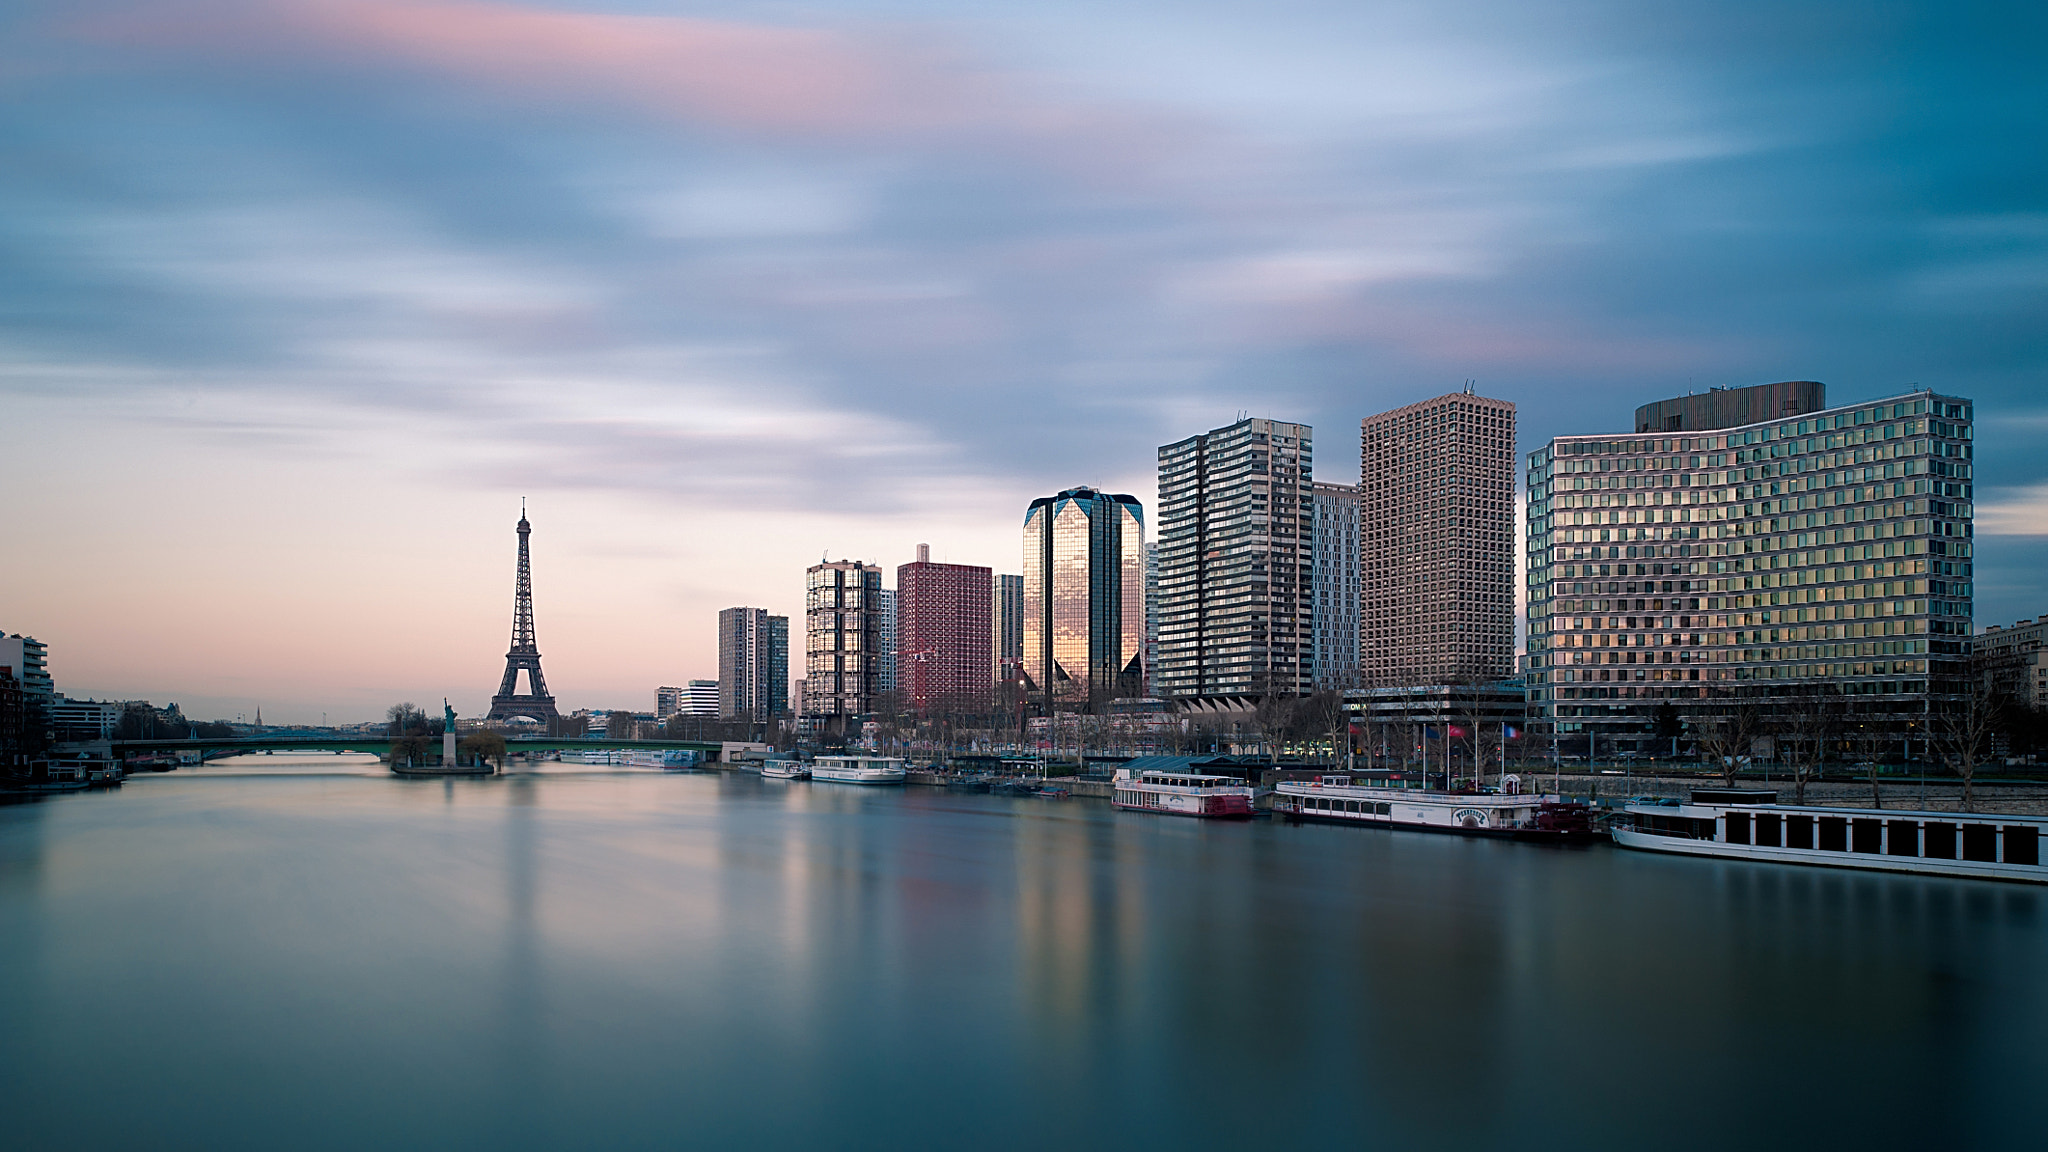 Photograph Back to the Future by Hervé Dapremont on 500px